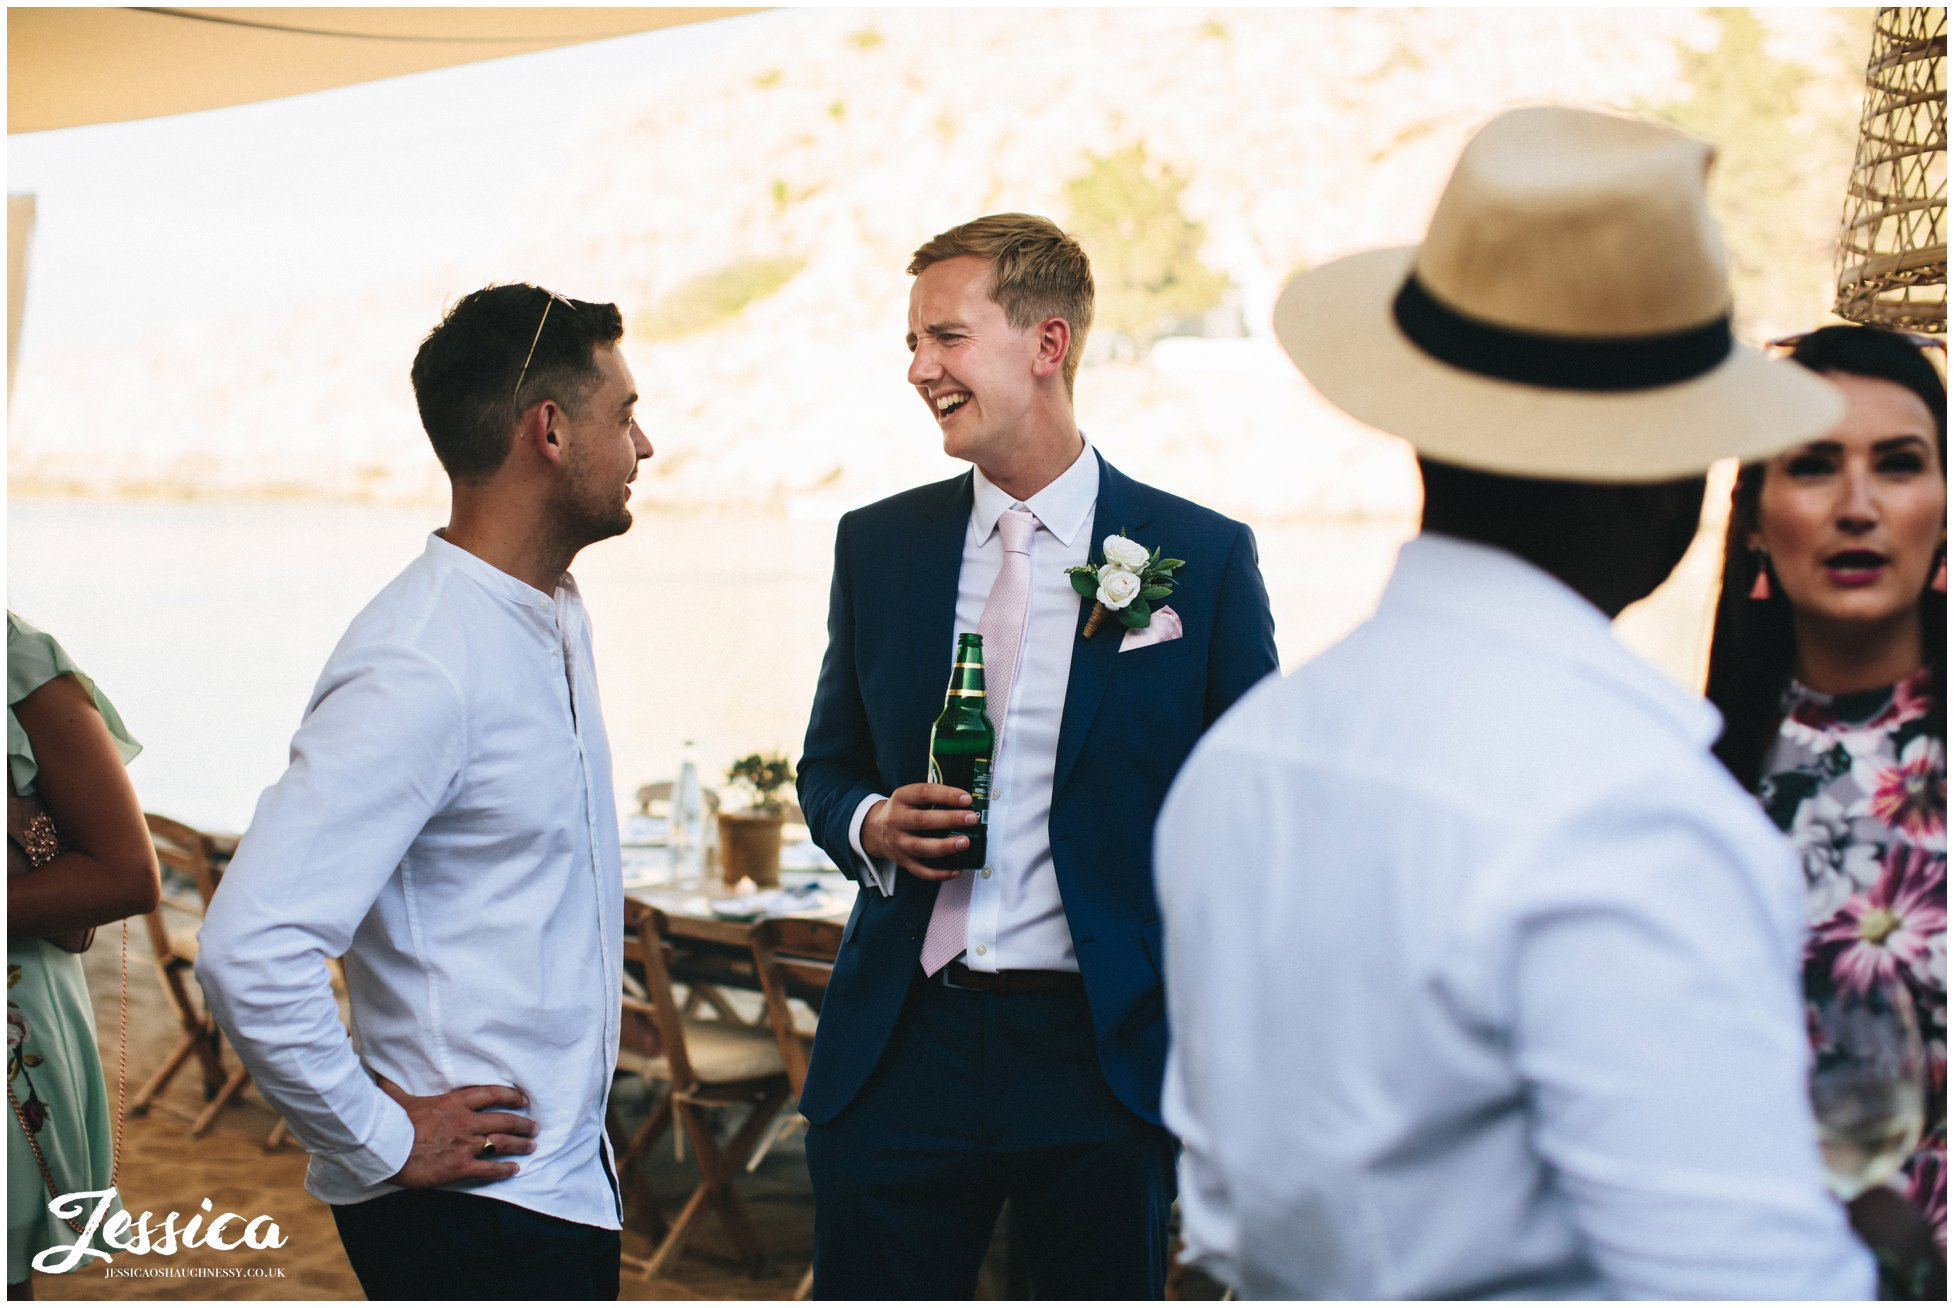 the groom jokes with his friends at their wedding reception